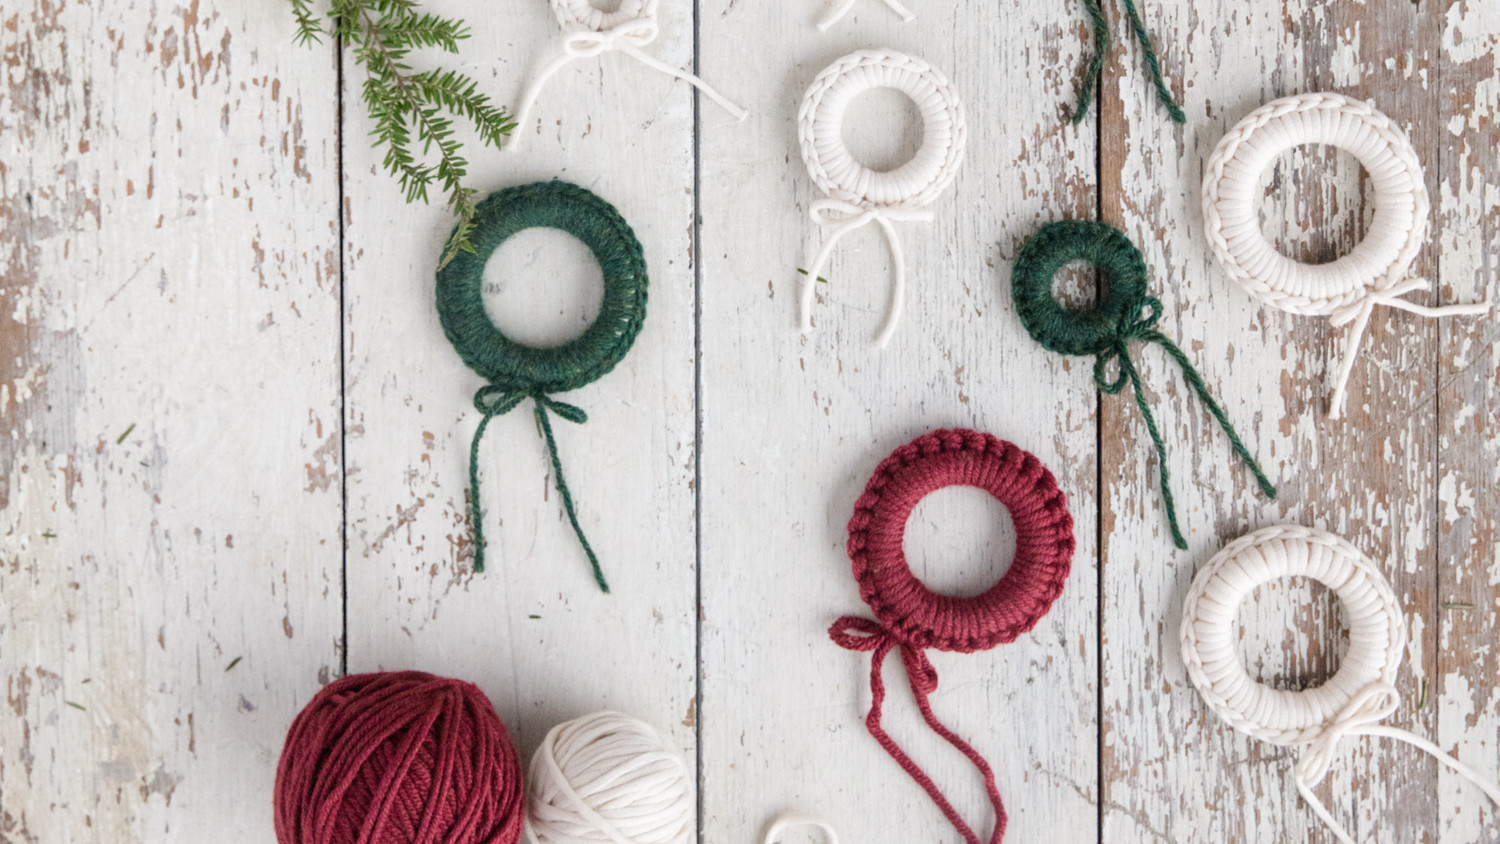 Miniature Crochet Wreath